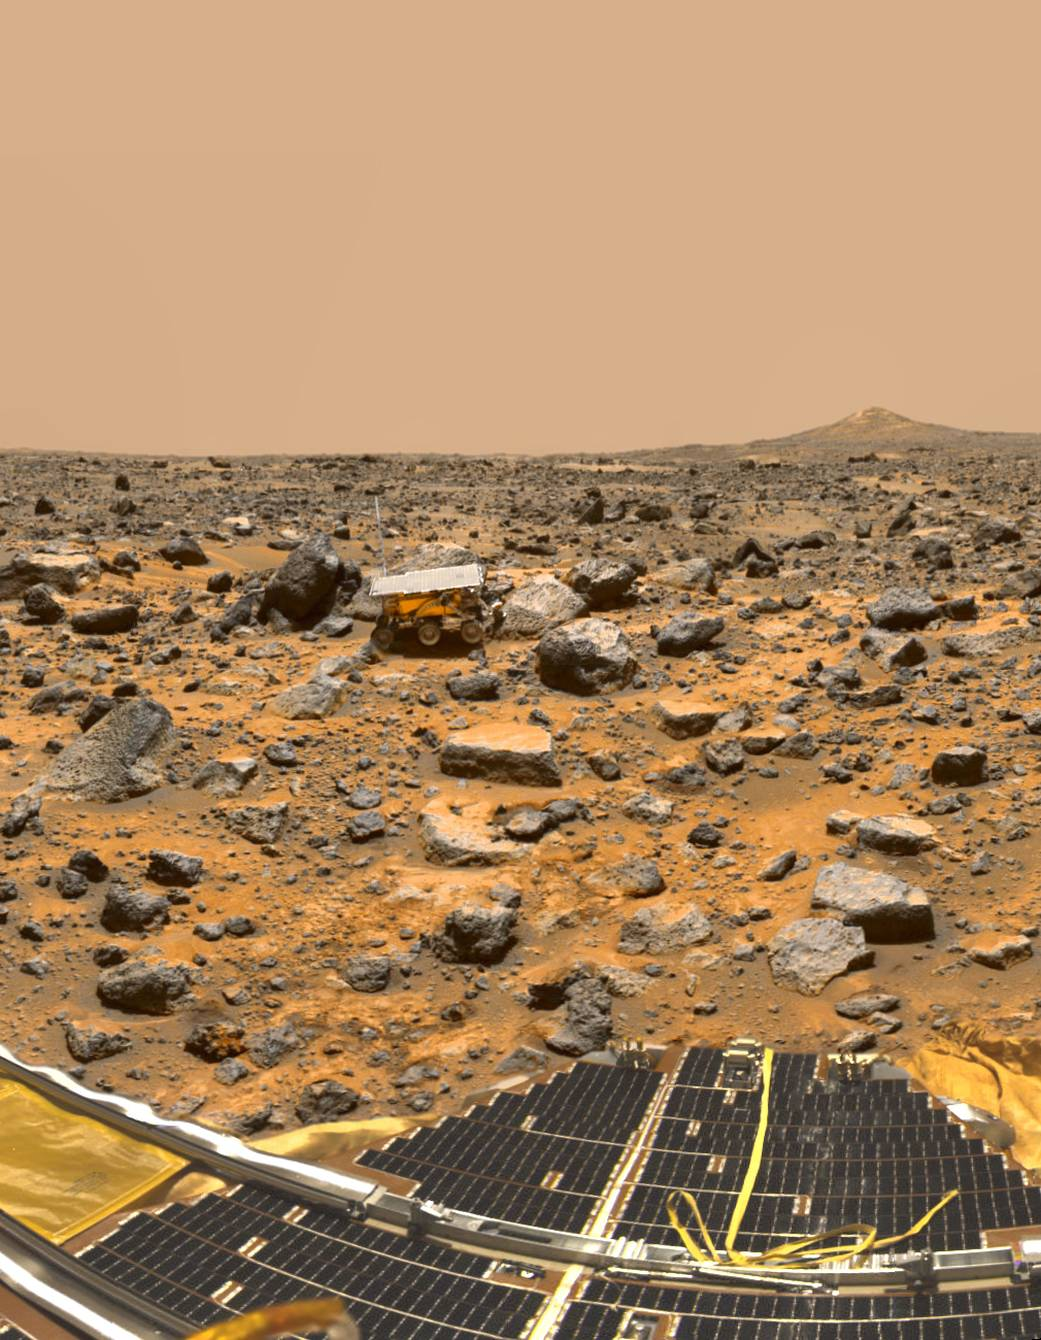 Photo from Mars